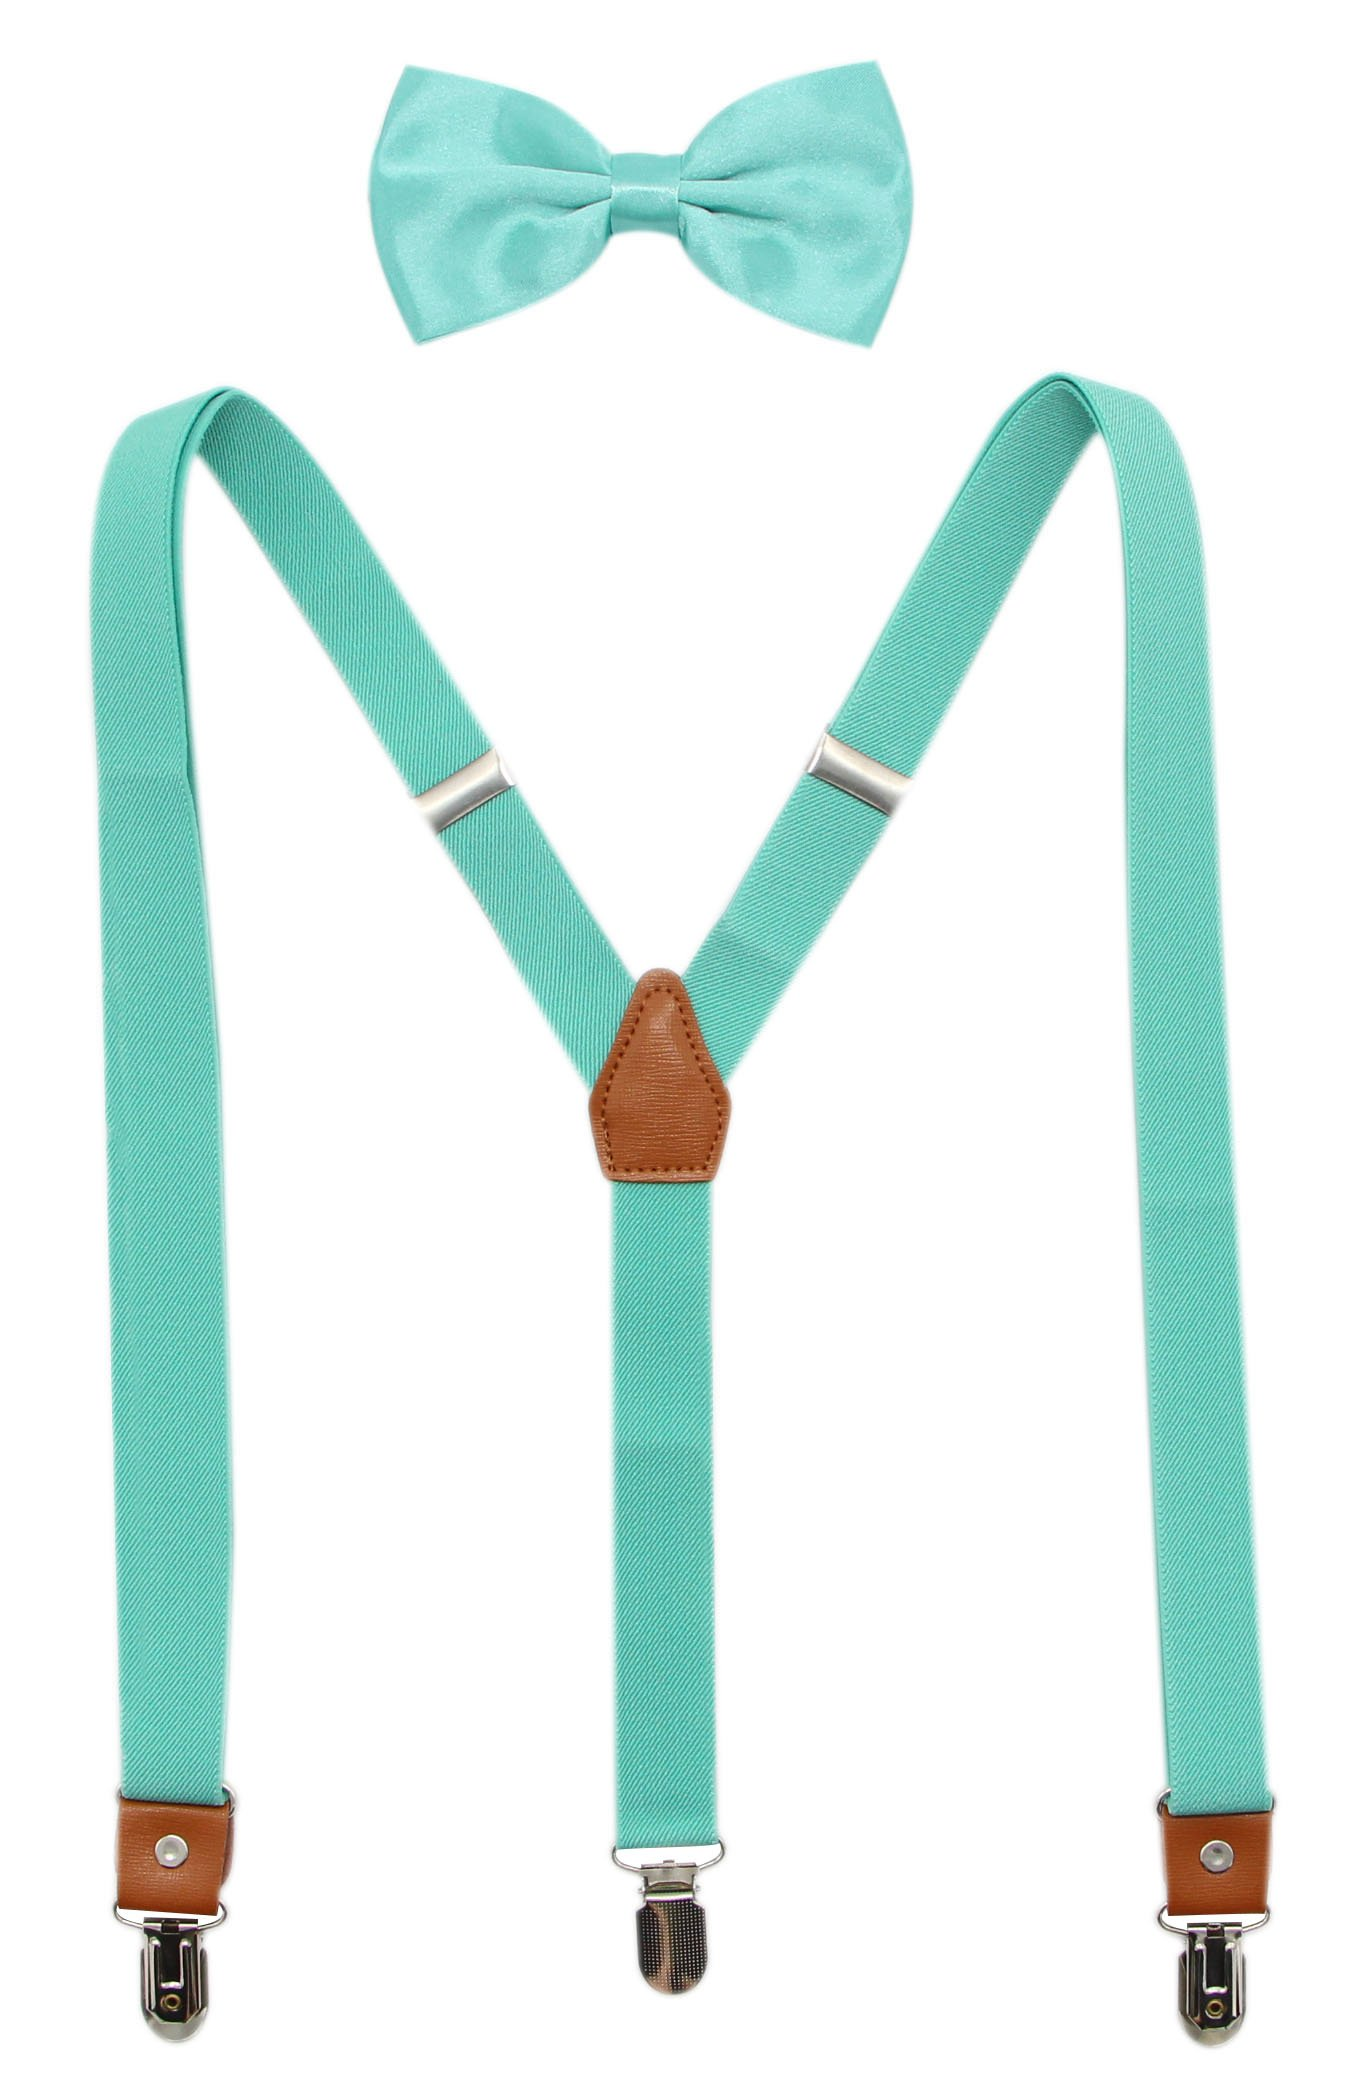 Suspenders And Pre-Tied Bowtie Set For Boys And Men By JAIFEI, Casual And Formal (Boys(33 Inches), Teal)